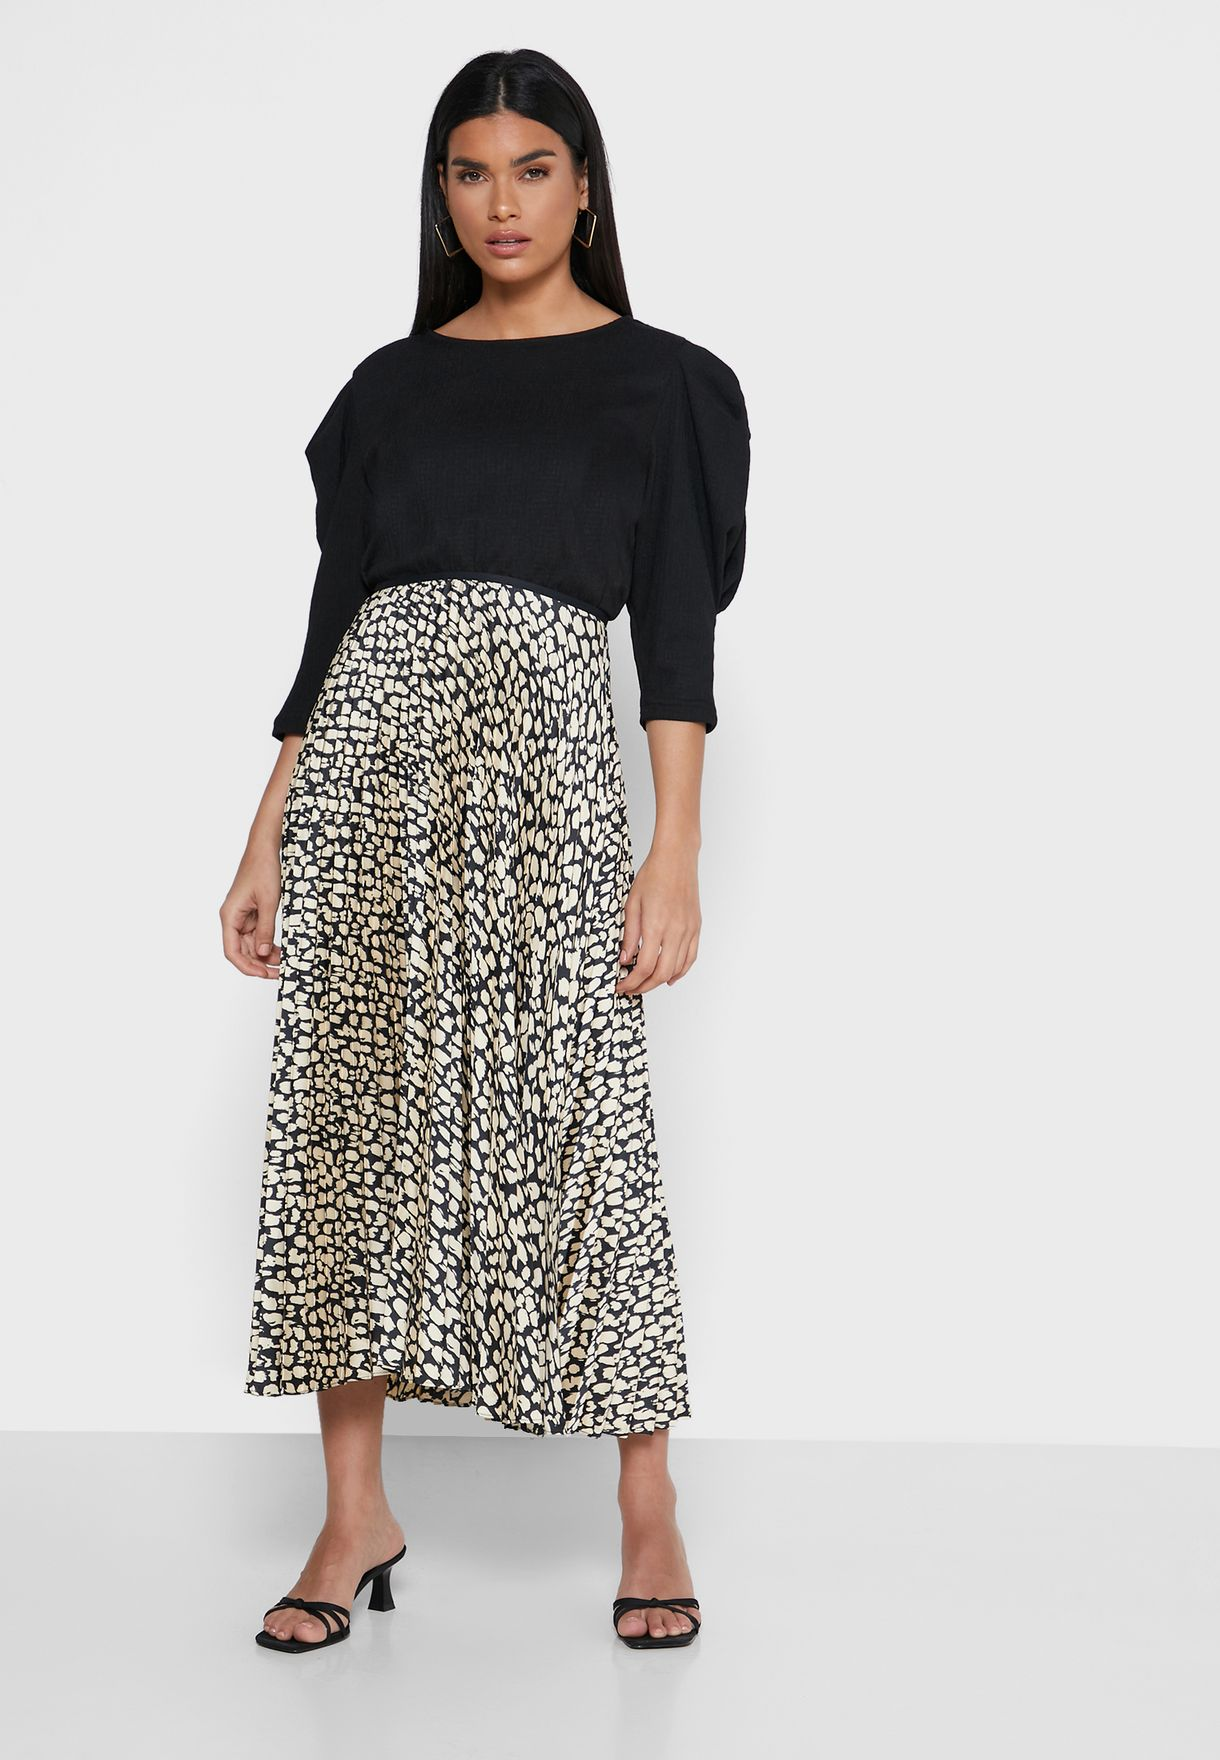 Mango Printed Plisse Skirt - Fashion